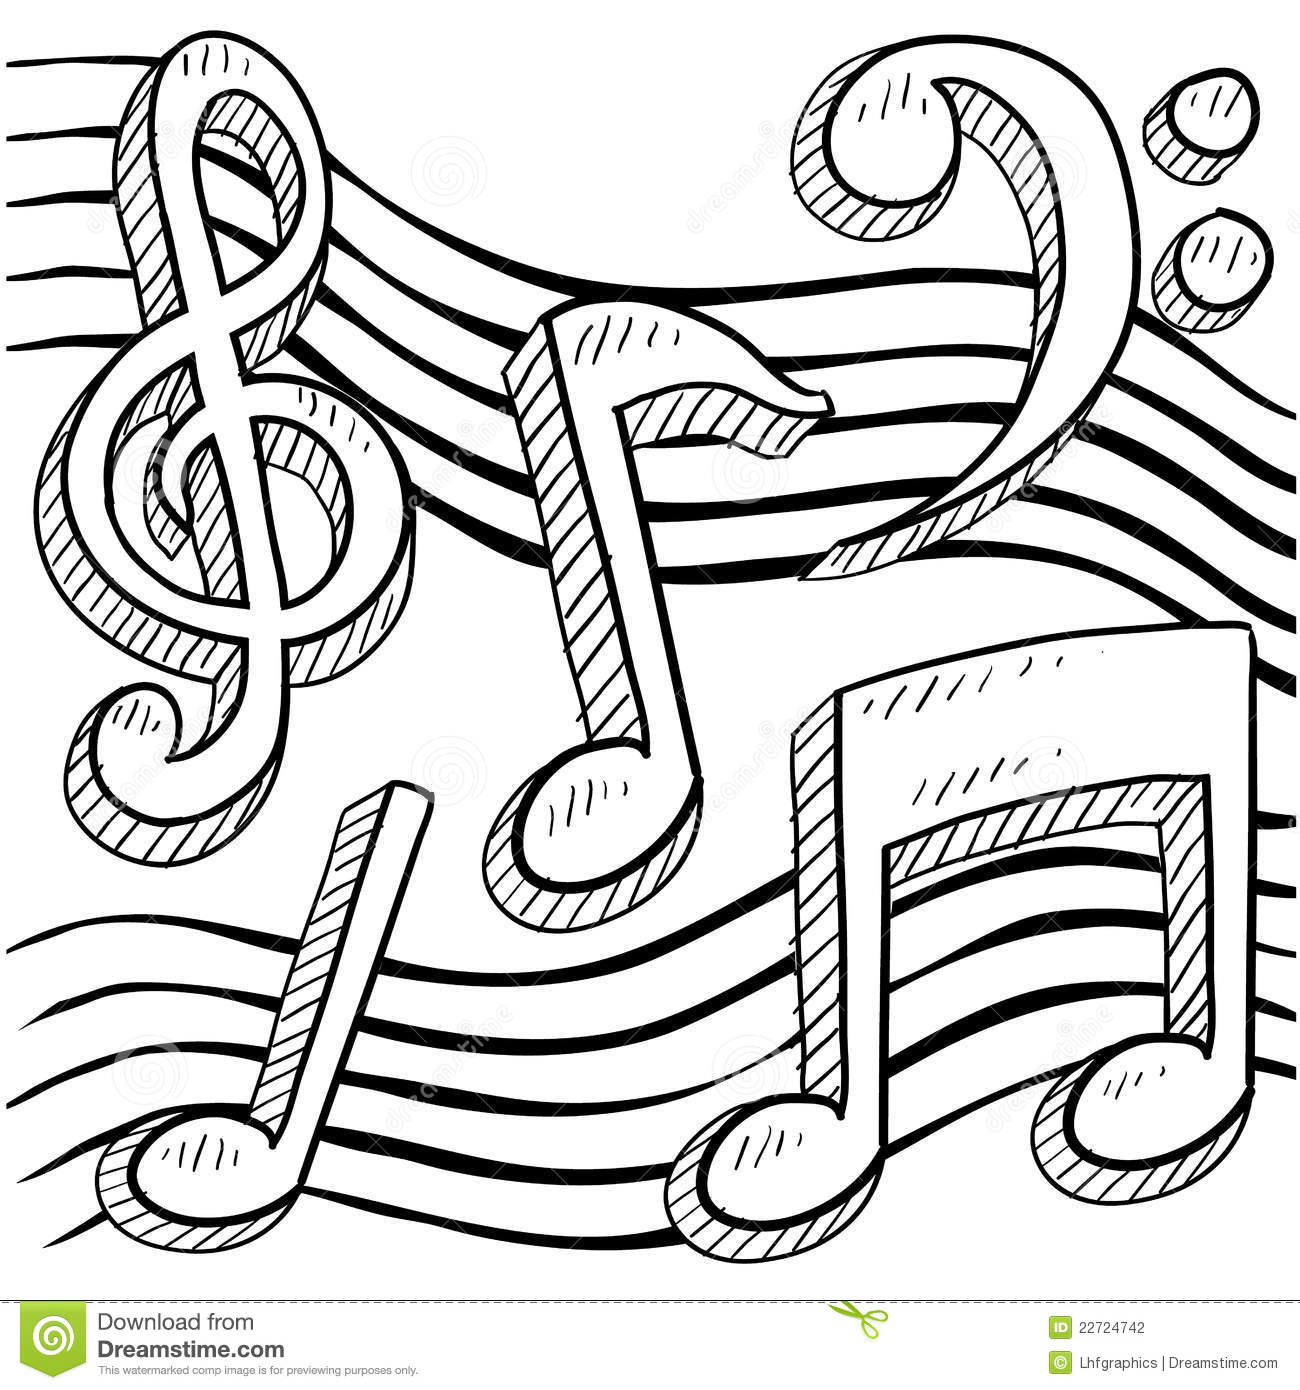 Music notes sketch stock photography image 22724742 for Sound of music coloring pages